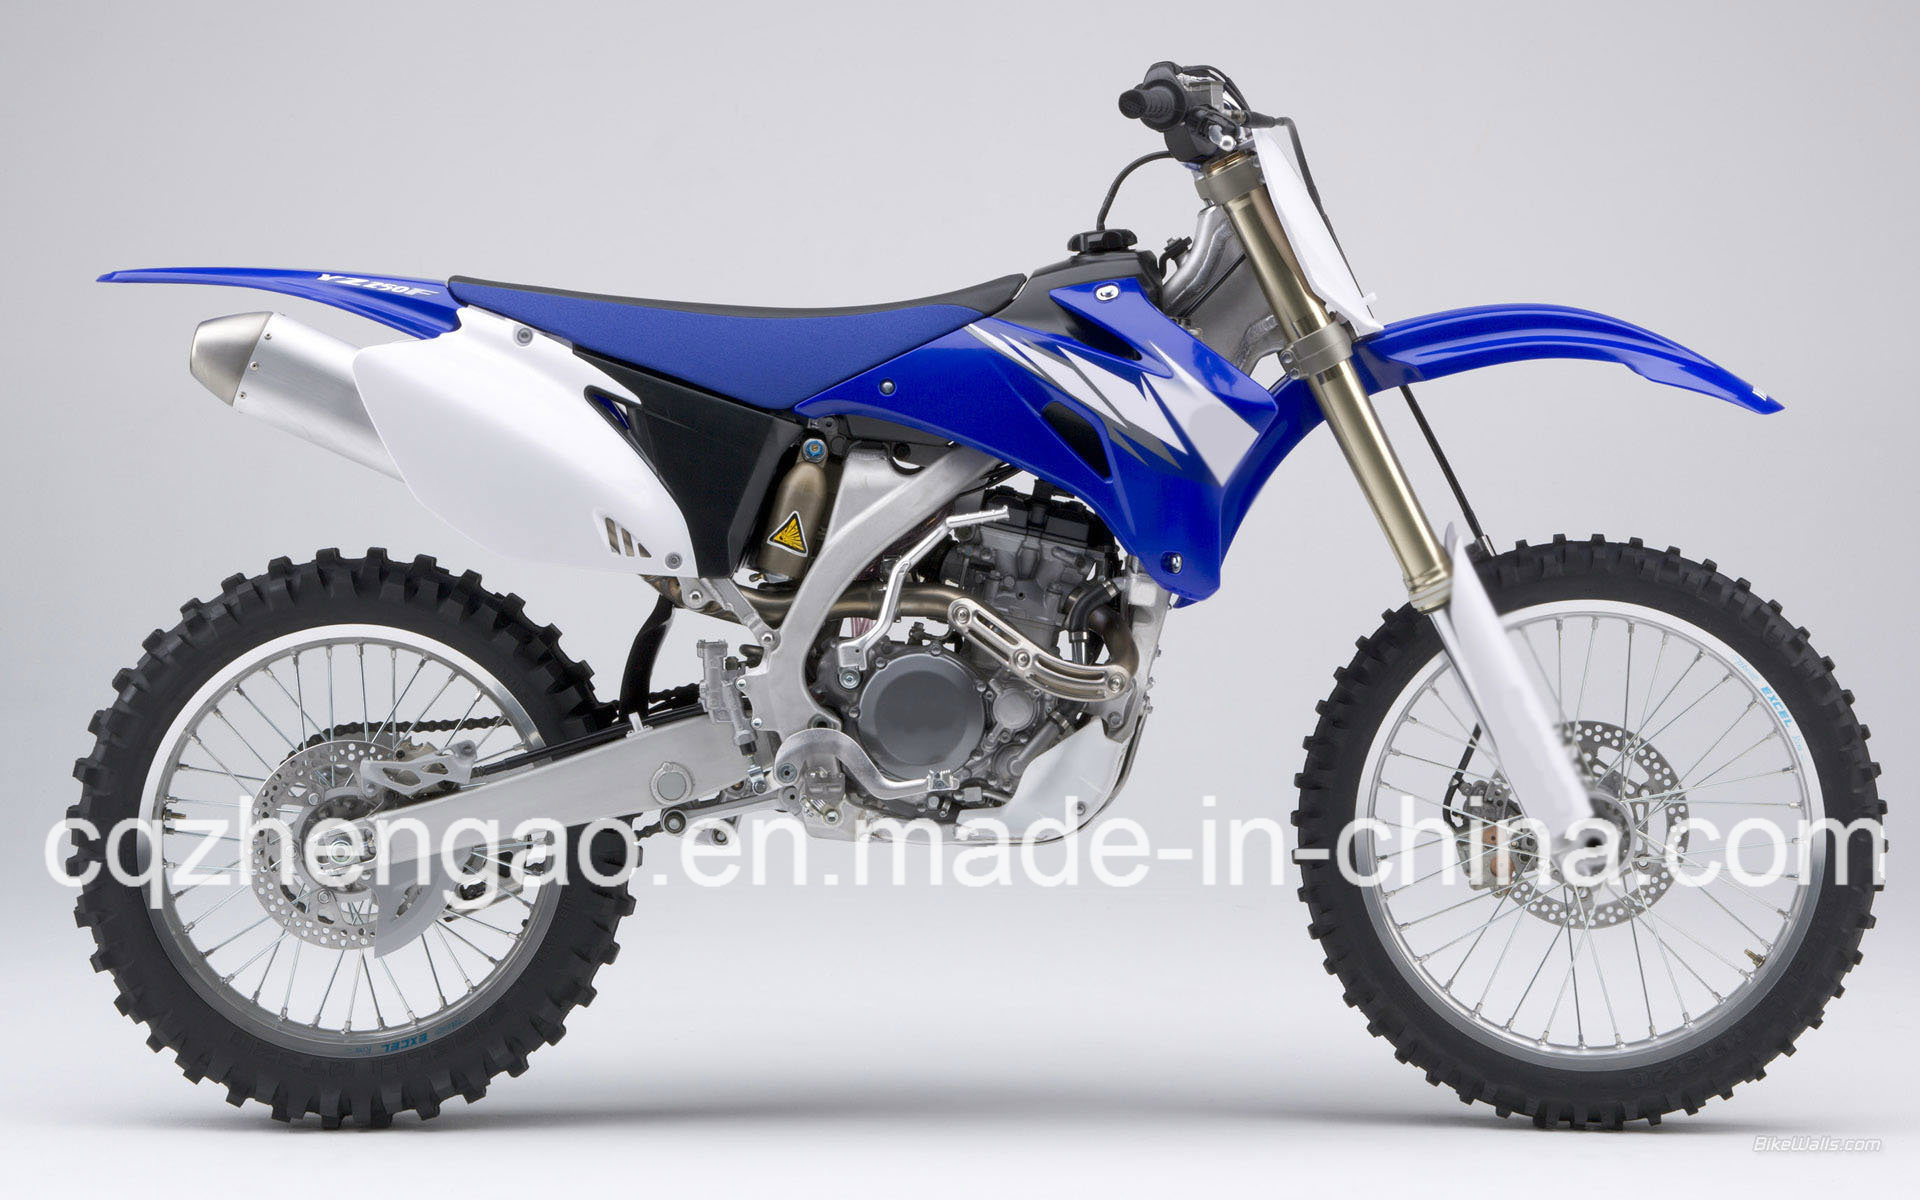 yamaha dirt bikes images - photo #45